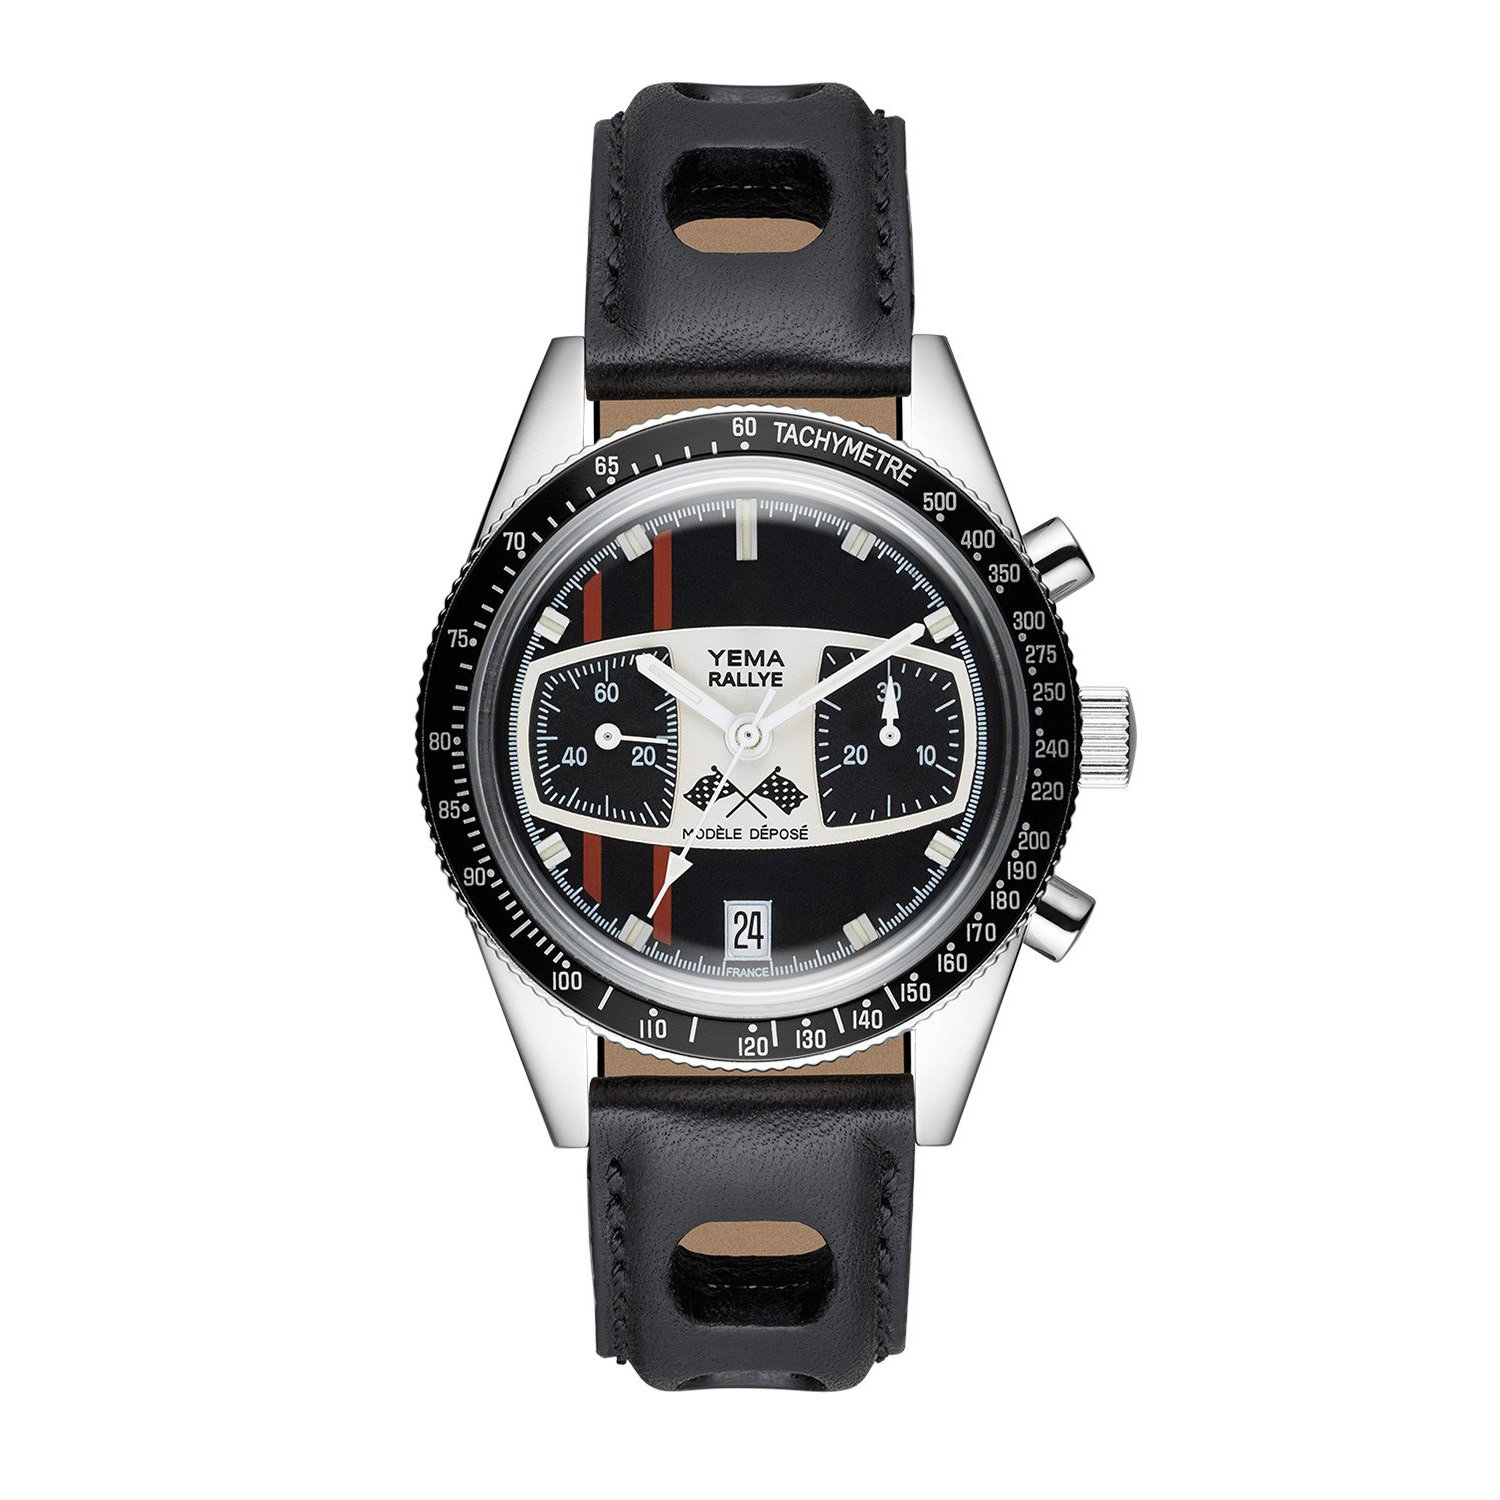 Montre Yema Rally Andretti Edition Limitée vue 1